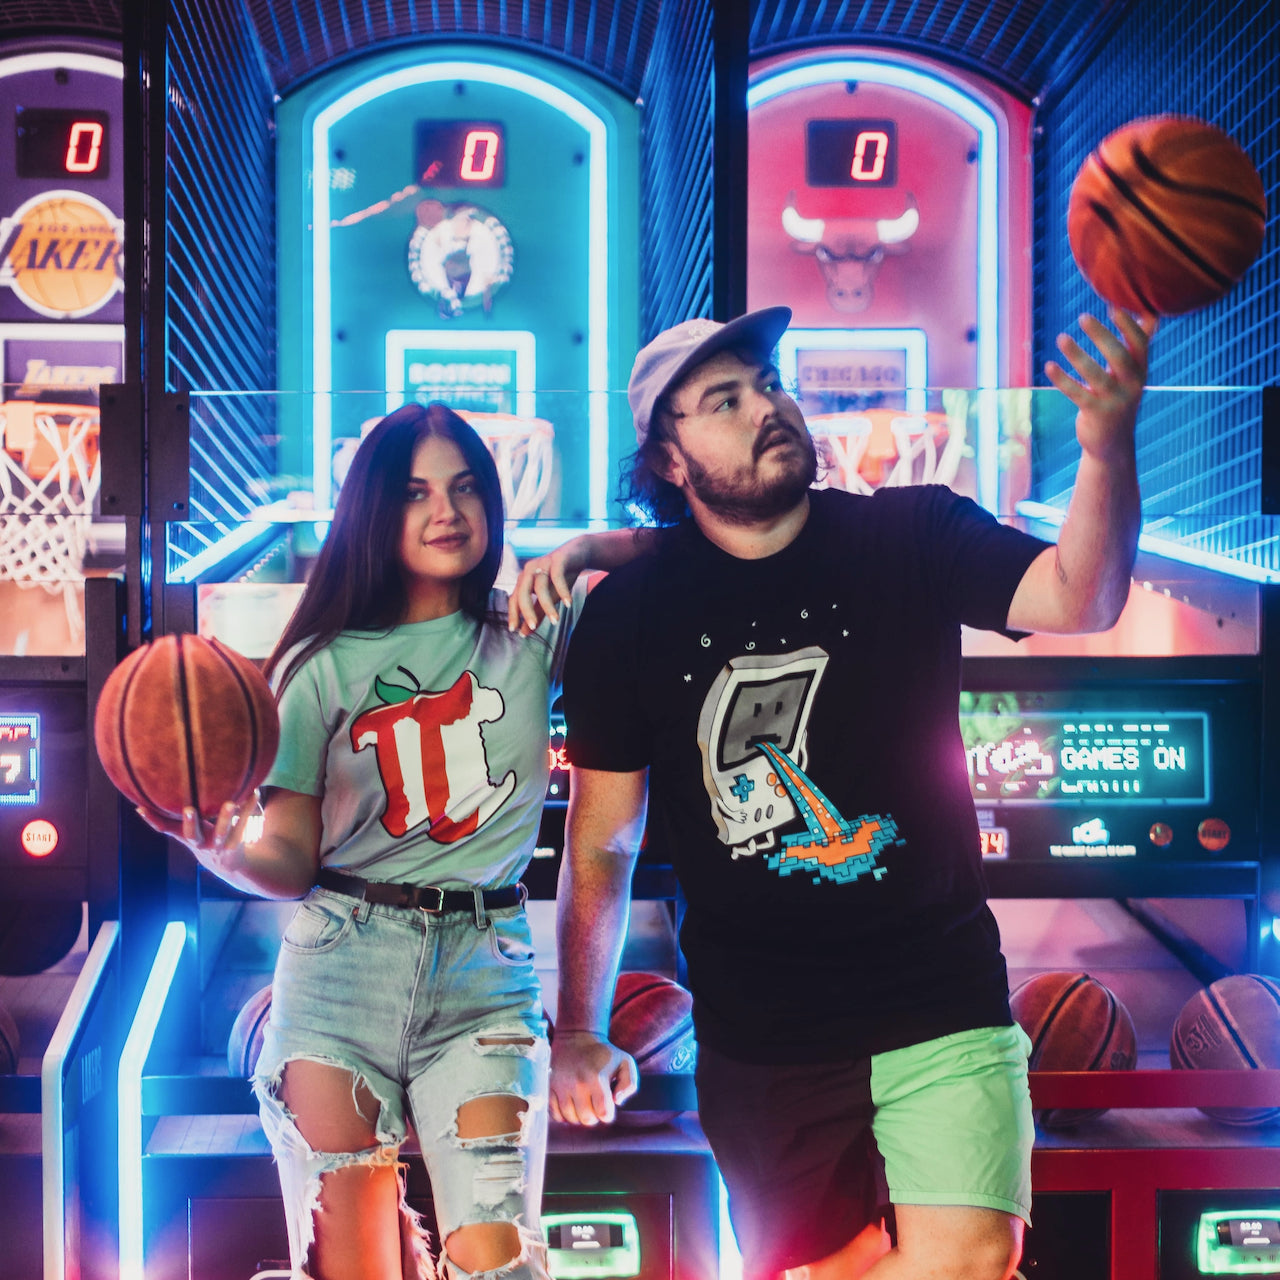 A pair of models in an arcade setting wearing T-shirts designed by Threadheads.